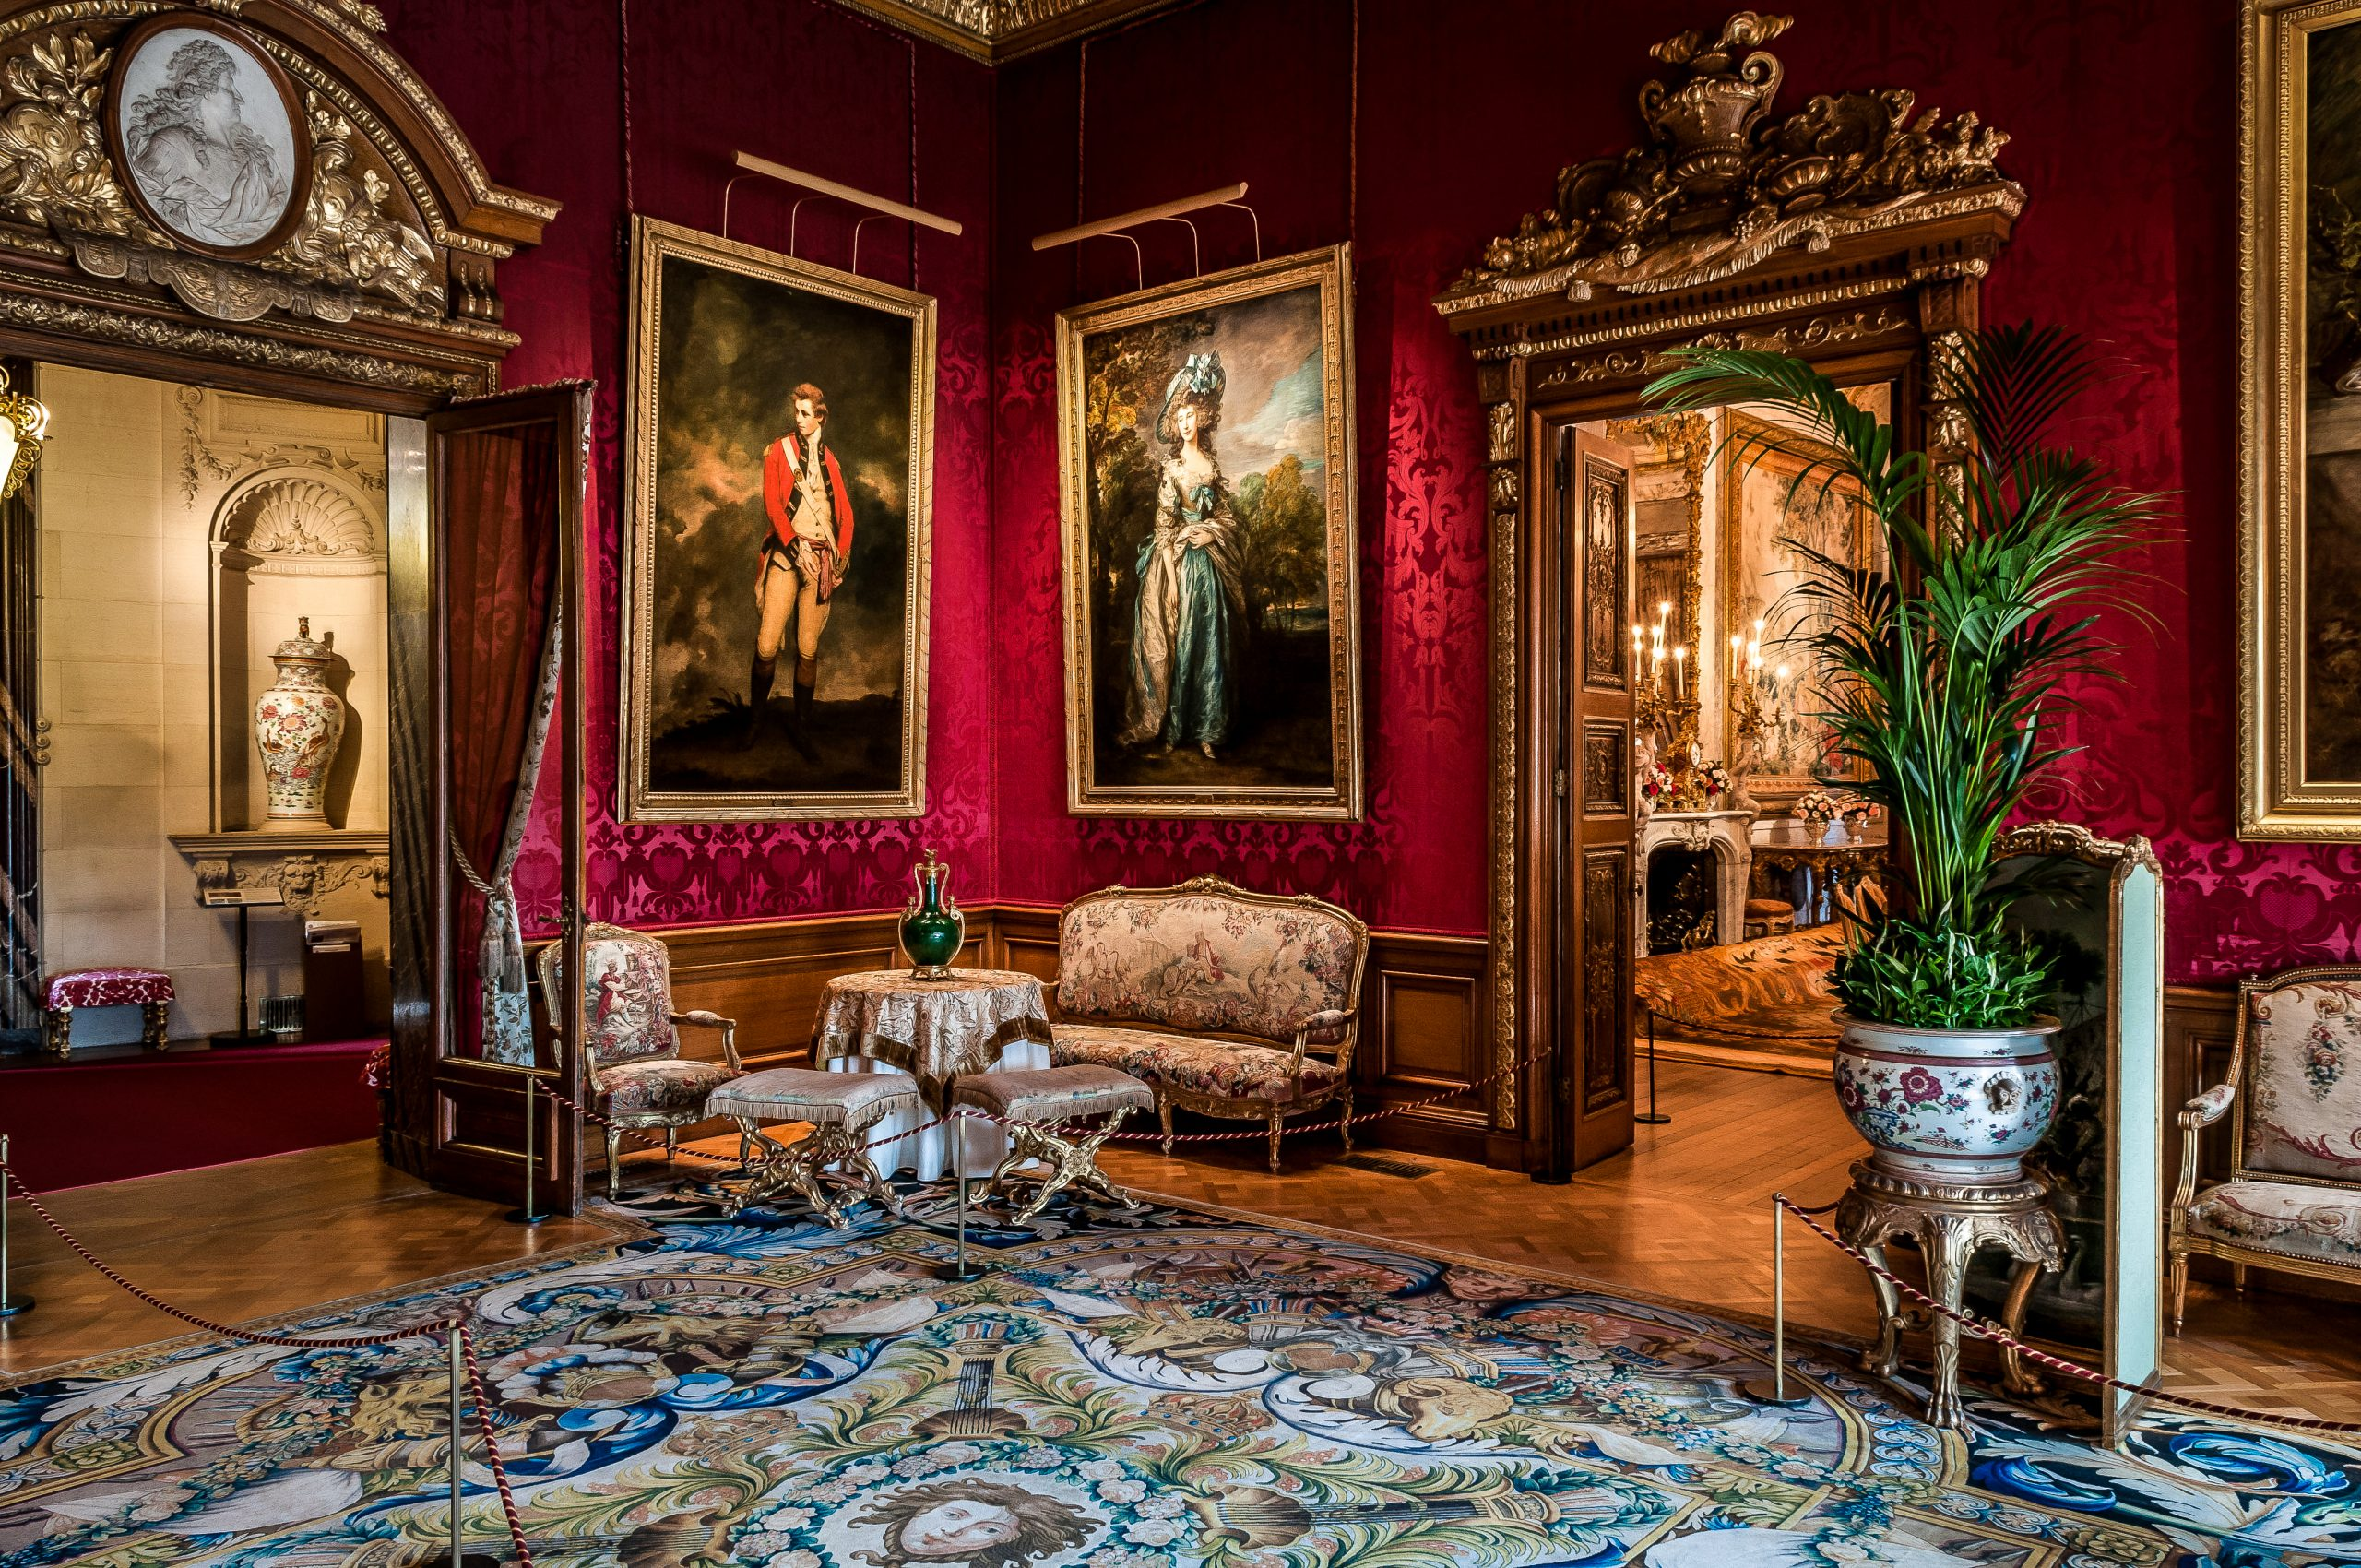 The Red Drawing Room, Waddesdon Manor. Photo Mike Fear © The National Trust, Waddesdon Manor